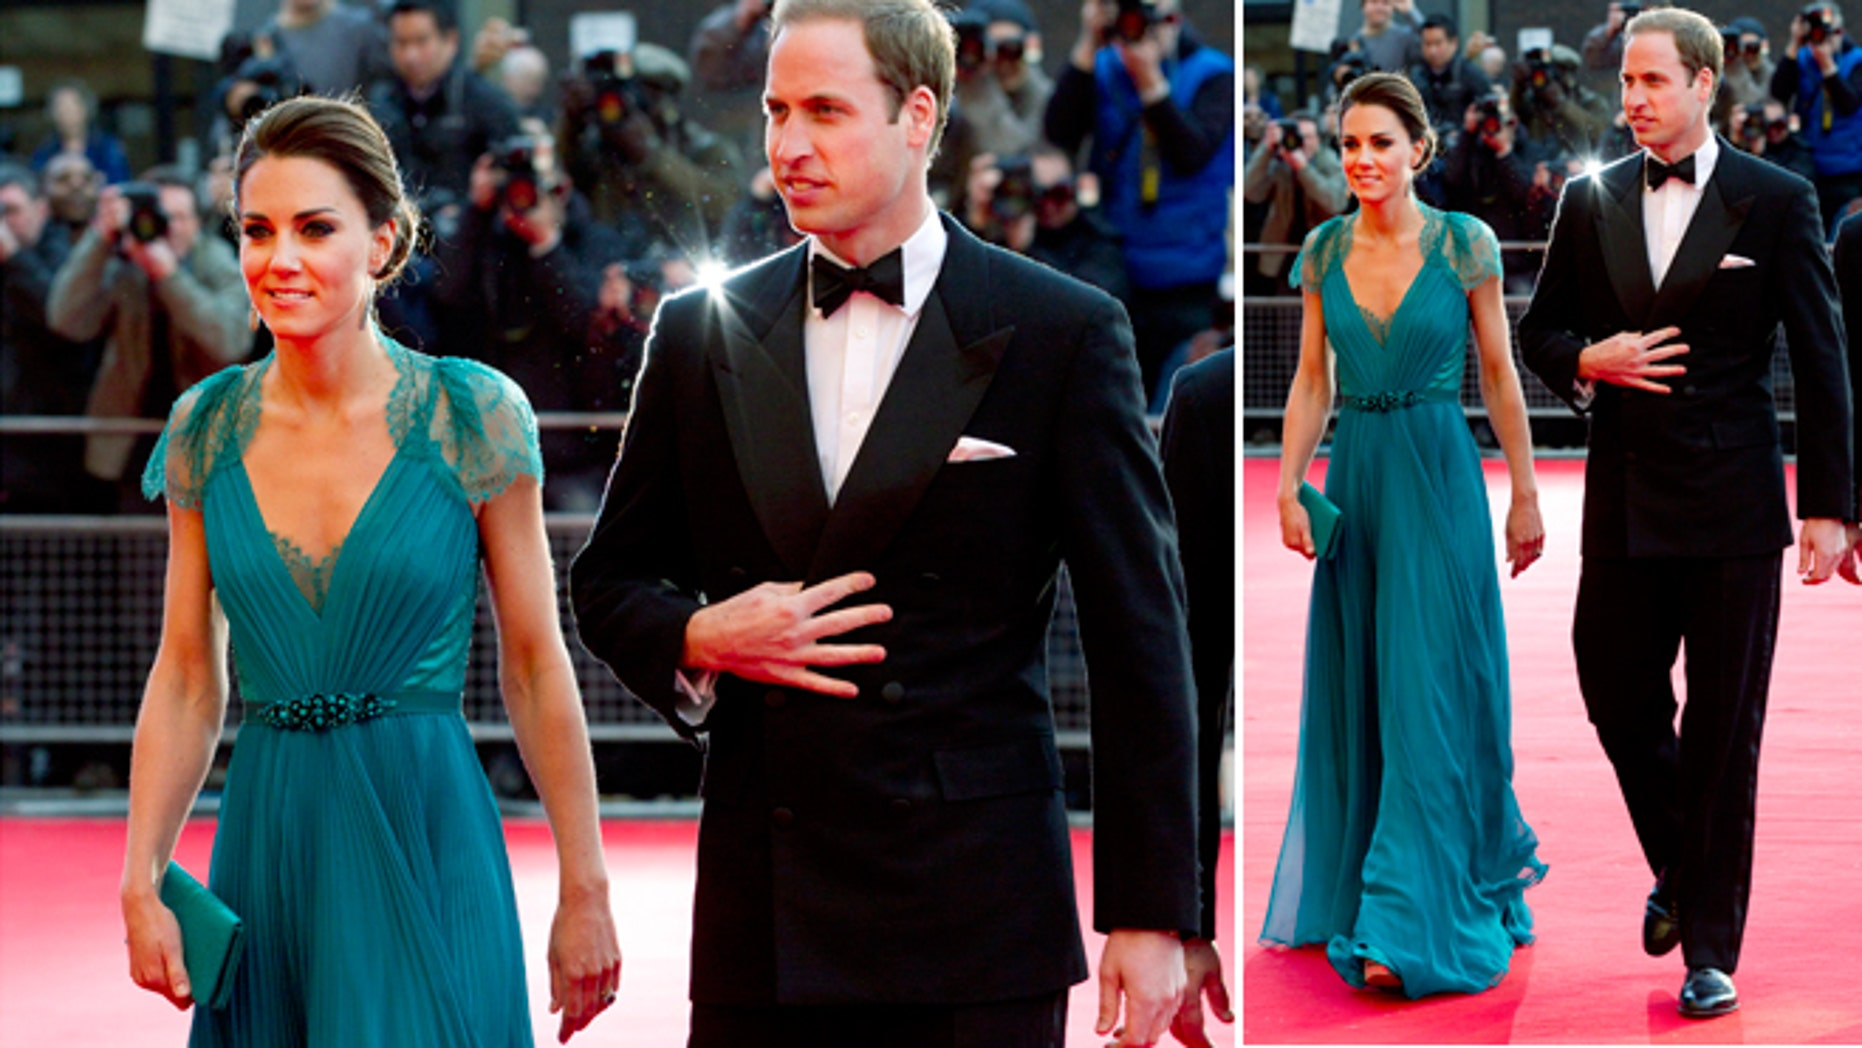 May 11, 2012: Prince William and Kate, Duchess of Cambridge arrive at the Royal Albert Hall for a British Olympic Team GB gala event in London.